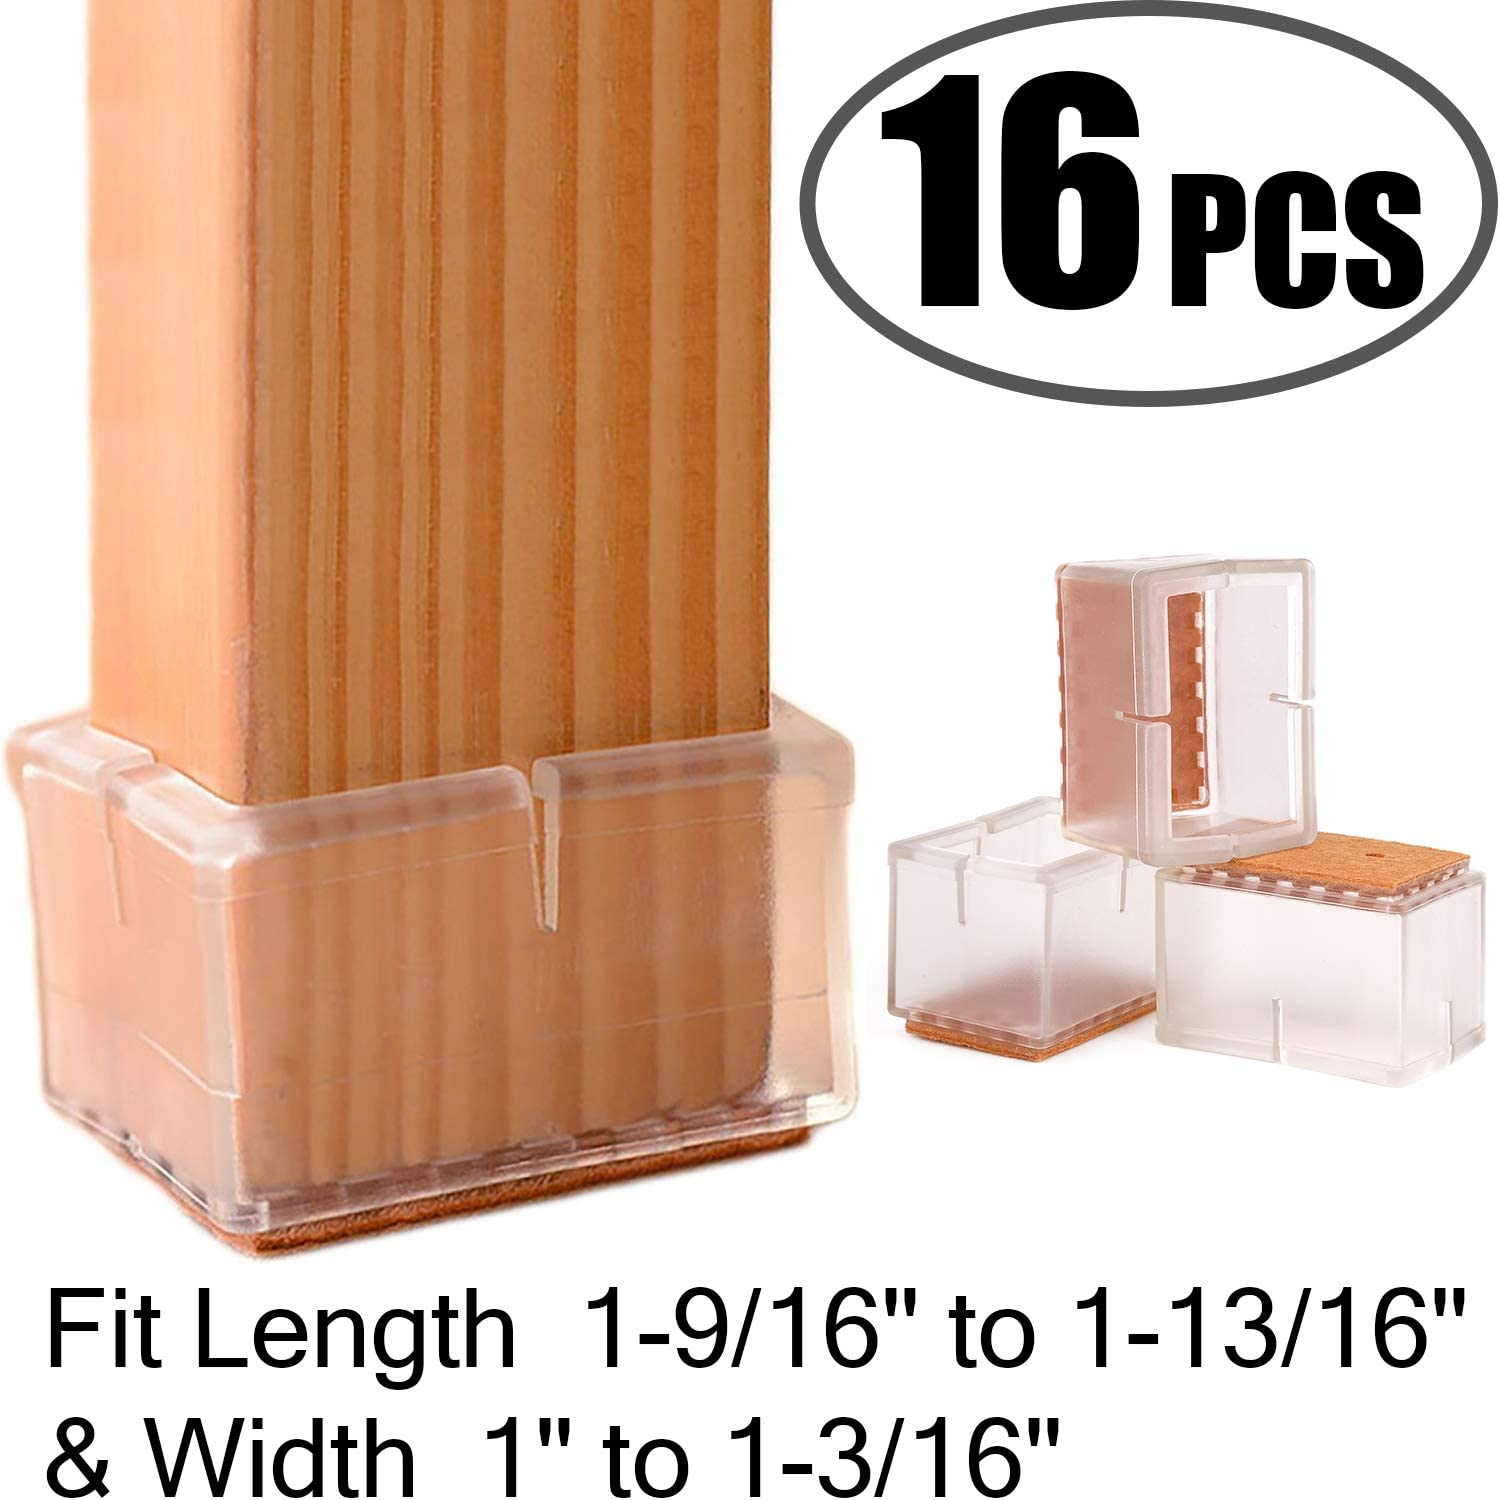 """Chair Leg Floor Protectors Rectangular Fit Length 1-9/16"""" to 1-13/16"""" & Width 1"""" to 1-3/16"""" Large Chair Leg Caps Silicone Table Chair Feet Protectors with Felt Pads (16Pack)"""